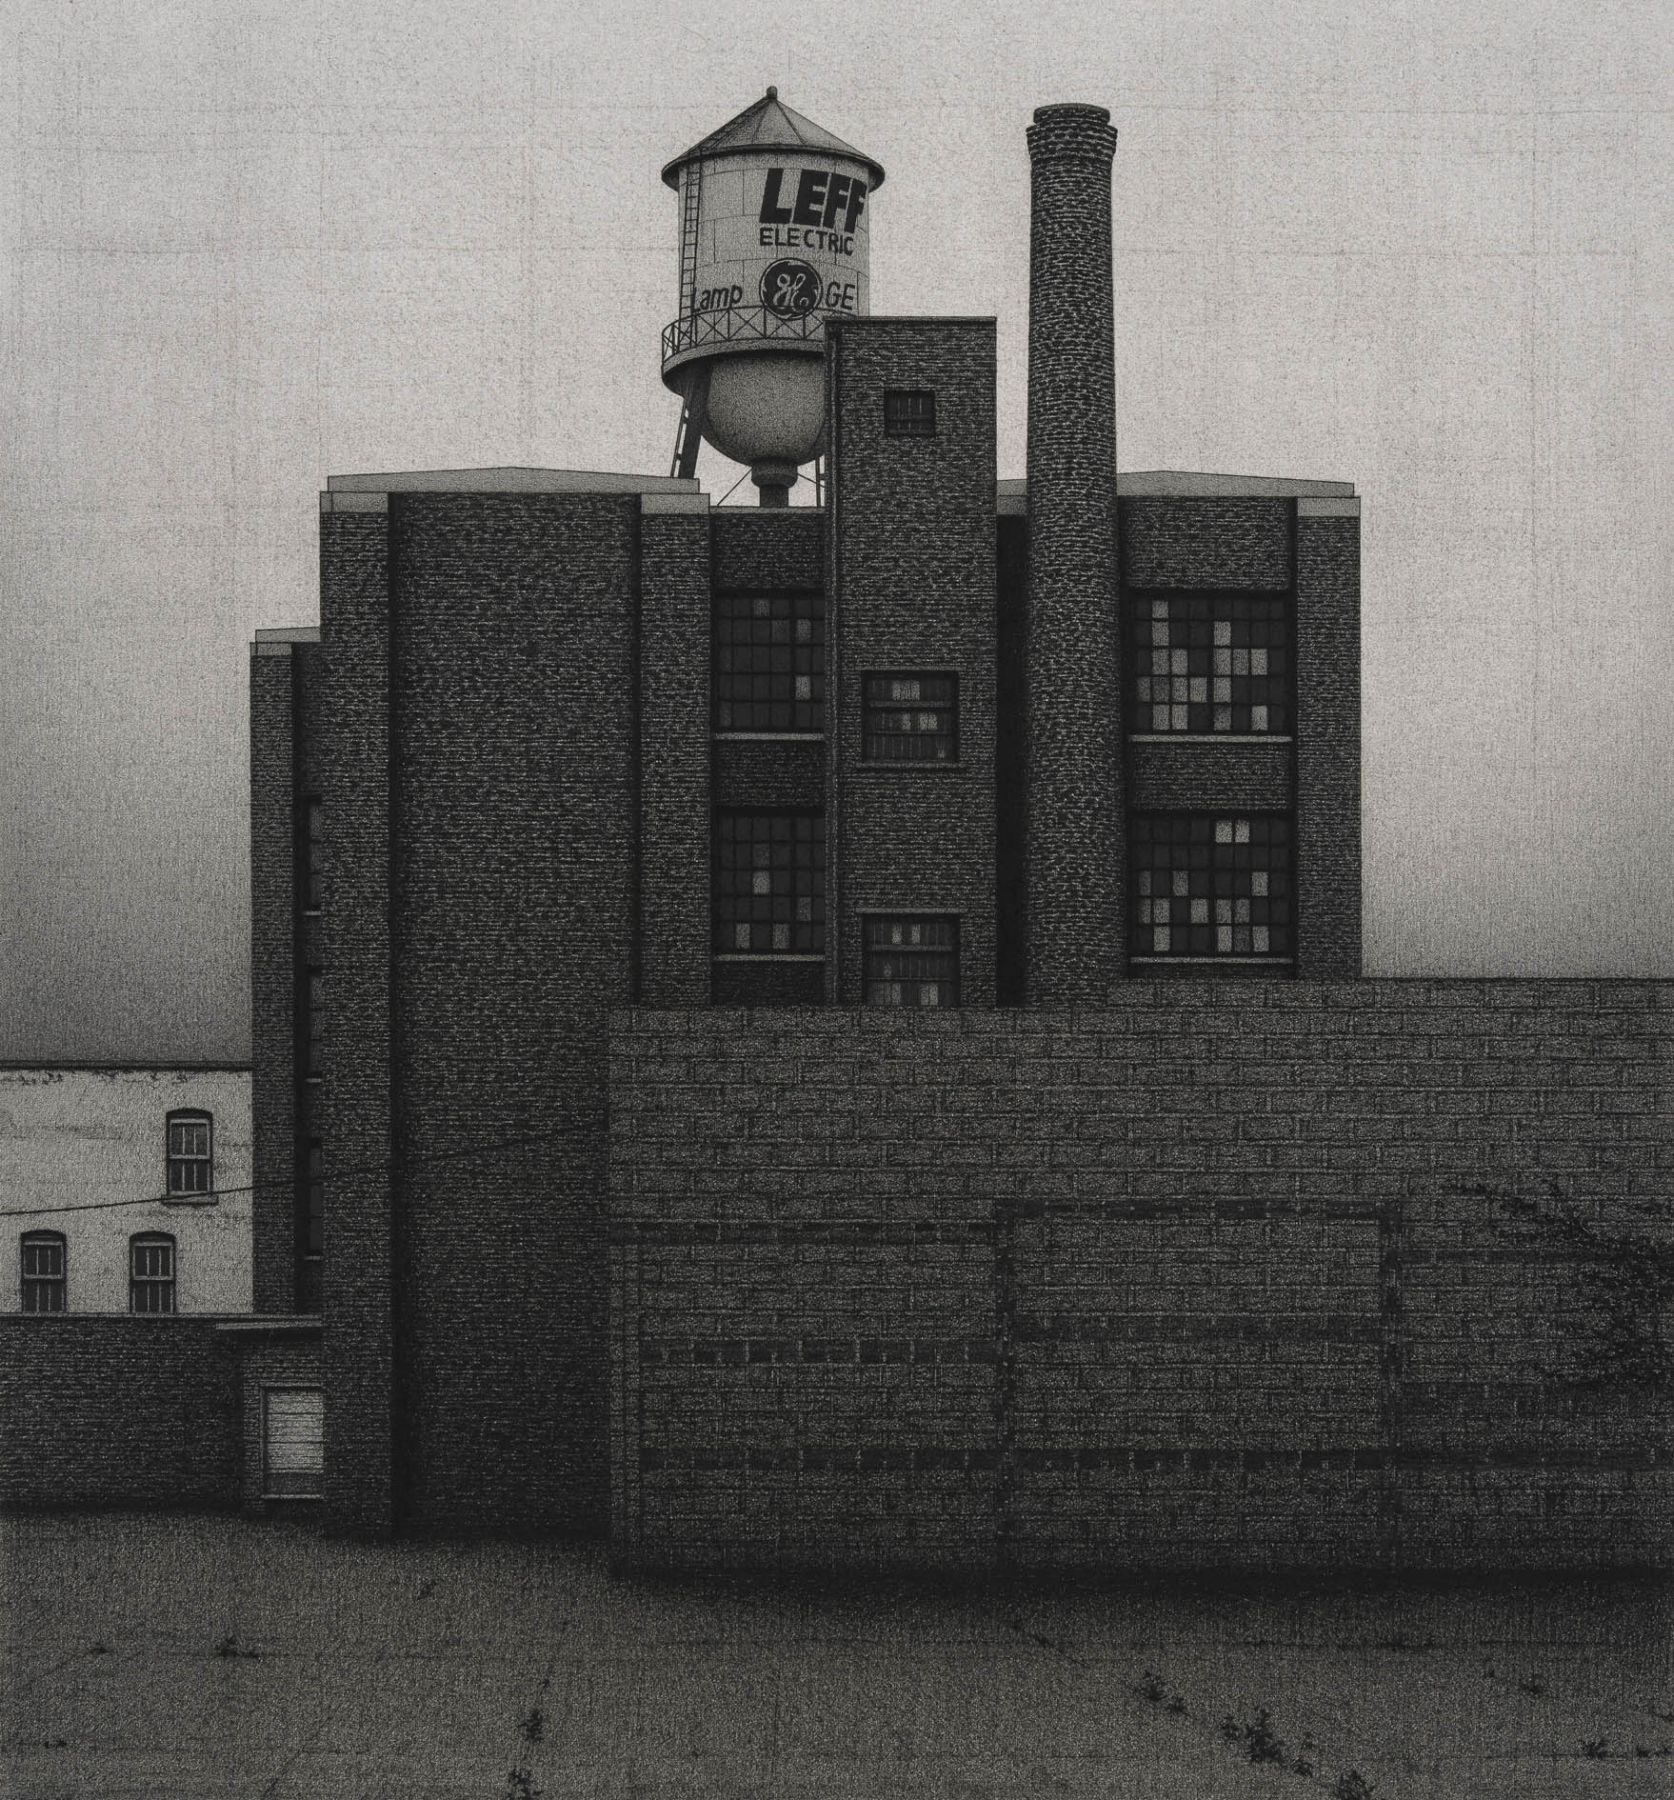 anthony mitri, Leff Electric Company, Cleveland, Ohio, 2012, charcoal on paper, 18 5/8 x 17 1/4 inches